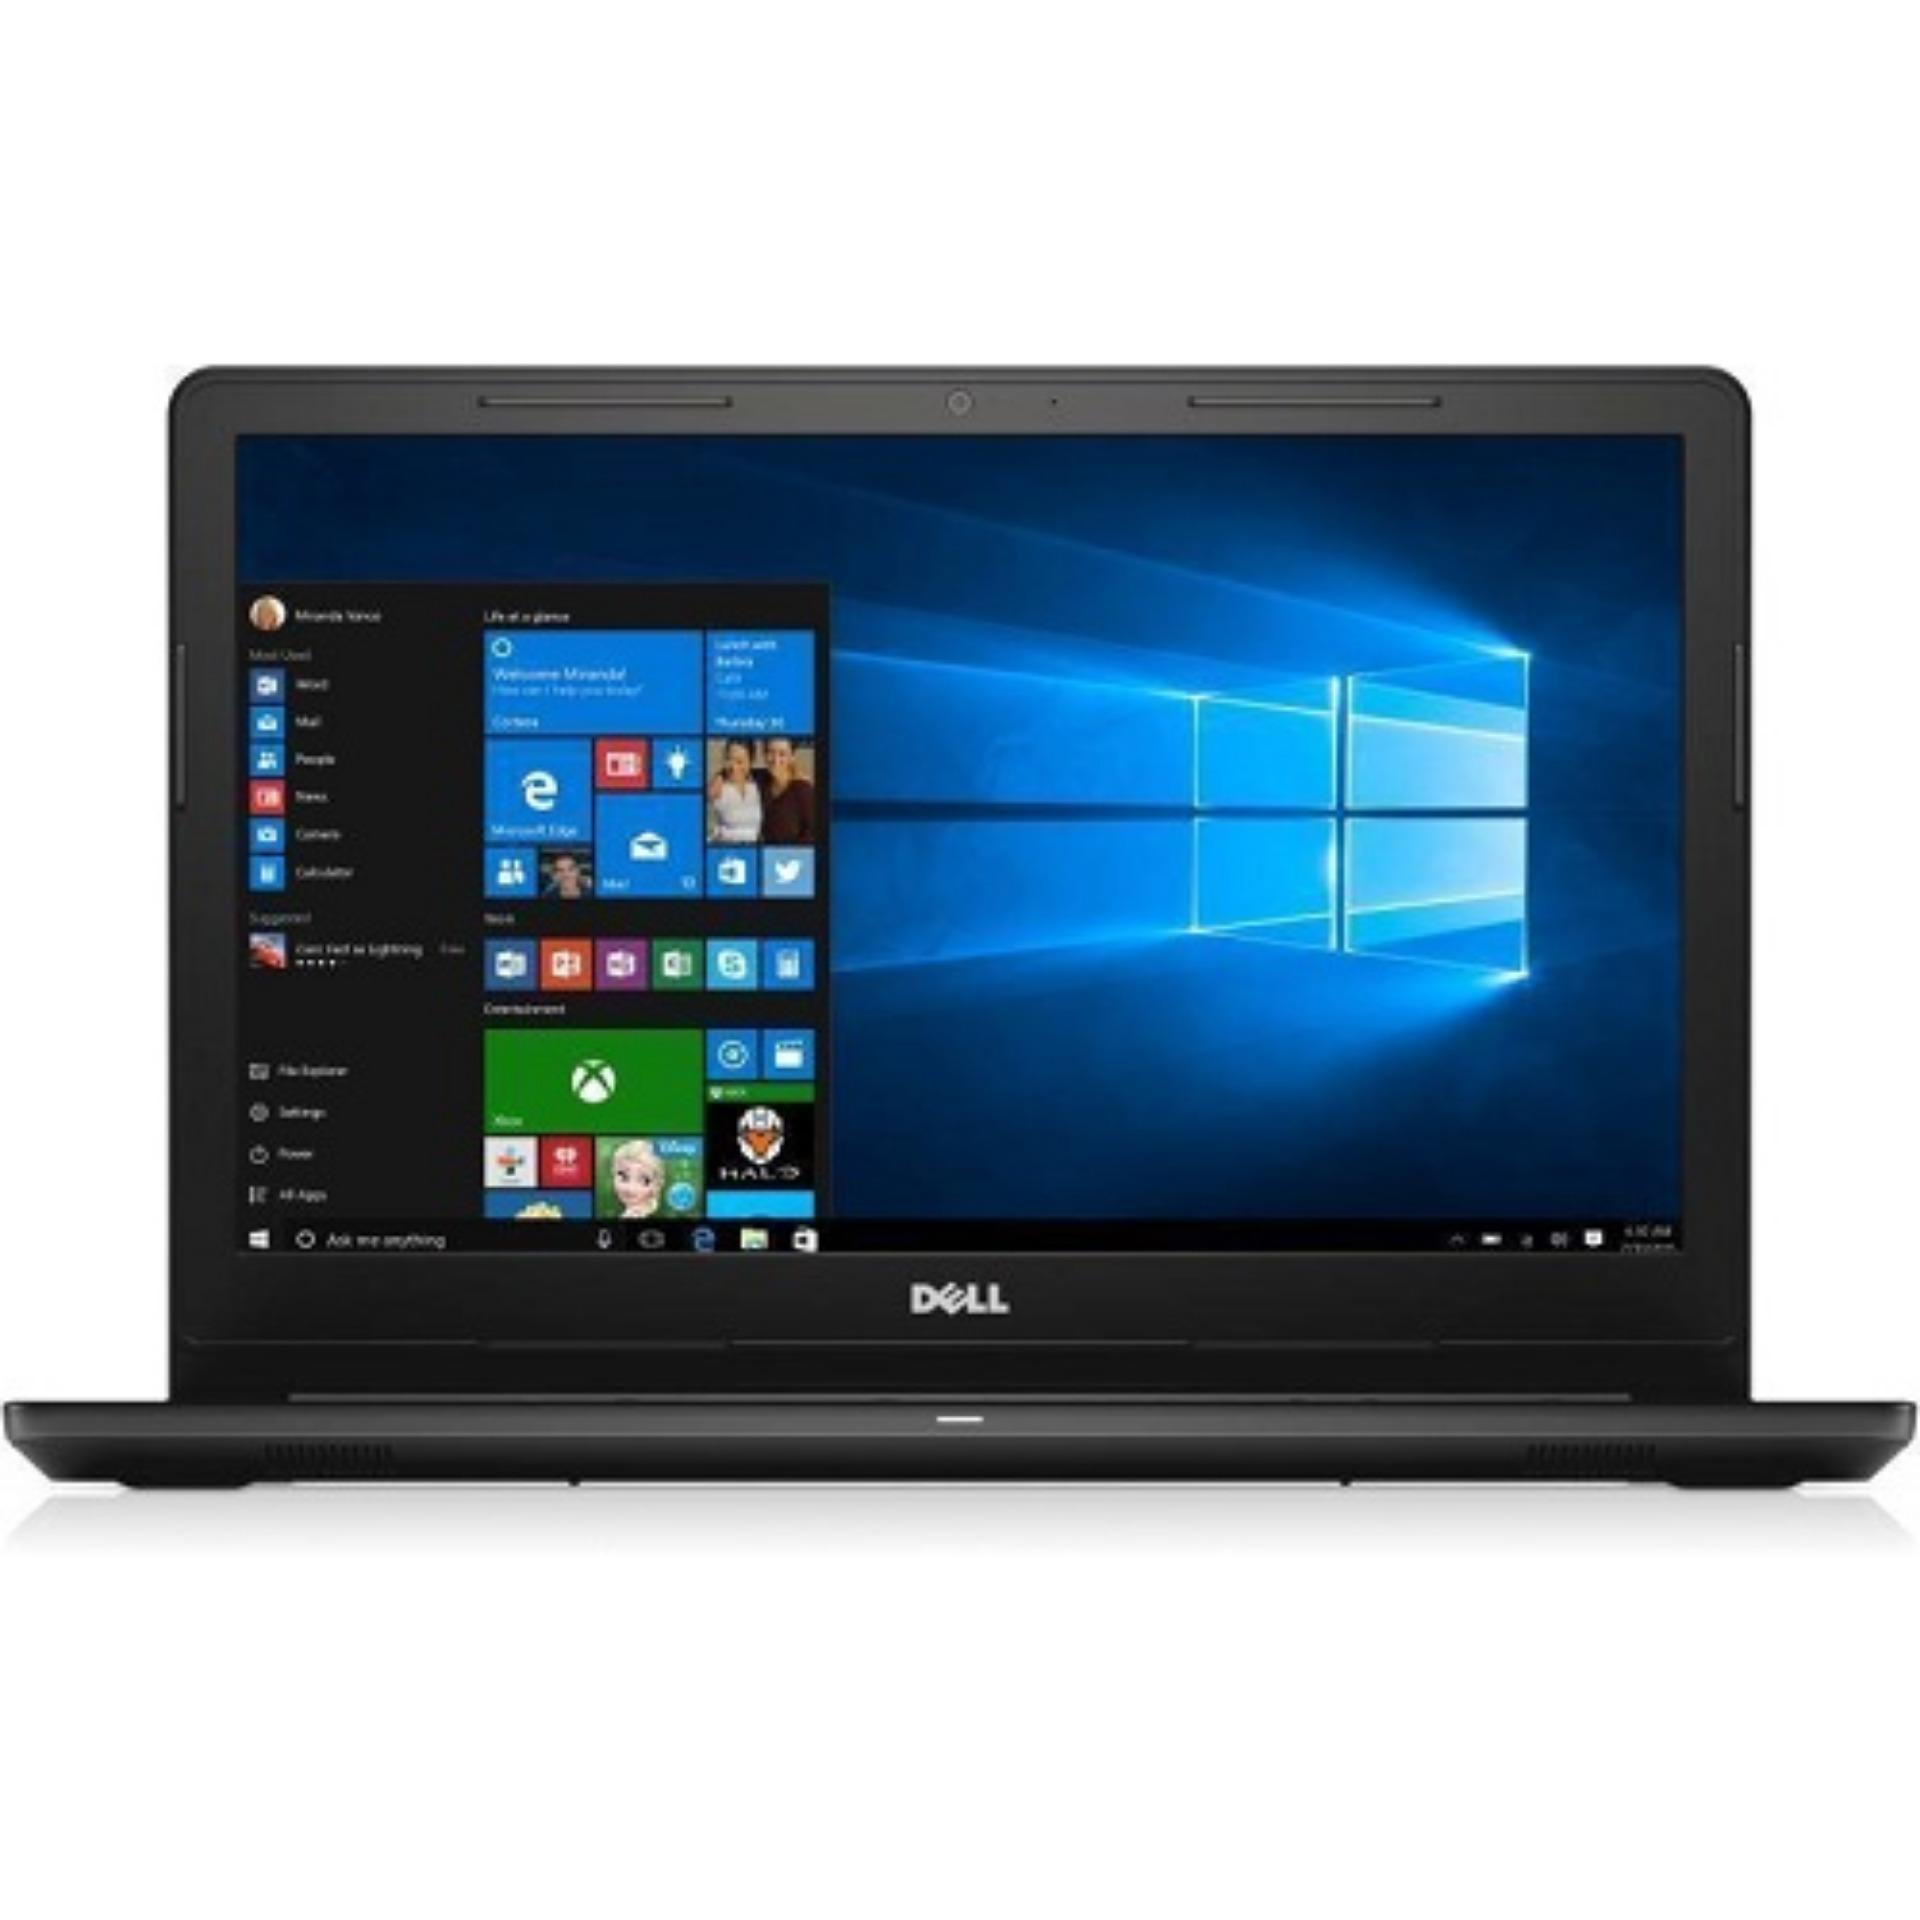 New INSPIRON 15 3000 SERIES 3567 7th Gen i5 7200U 4GB RAM 1TB AMD Radeon R5 M430 Graphics with 2GB...